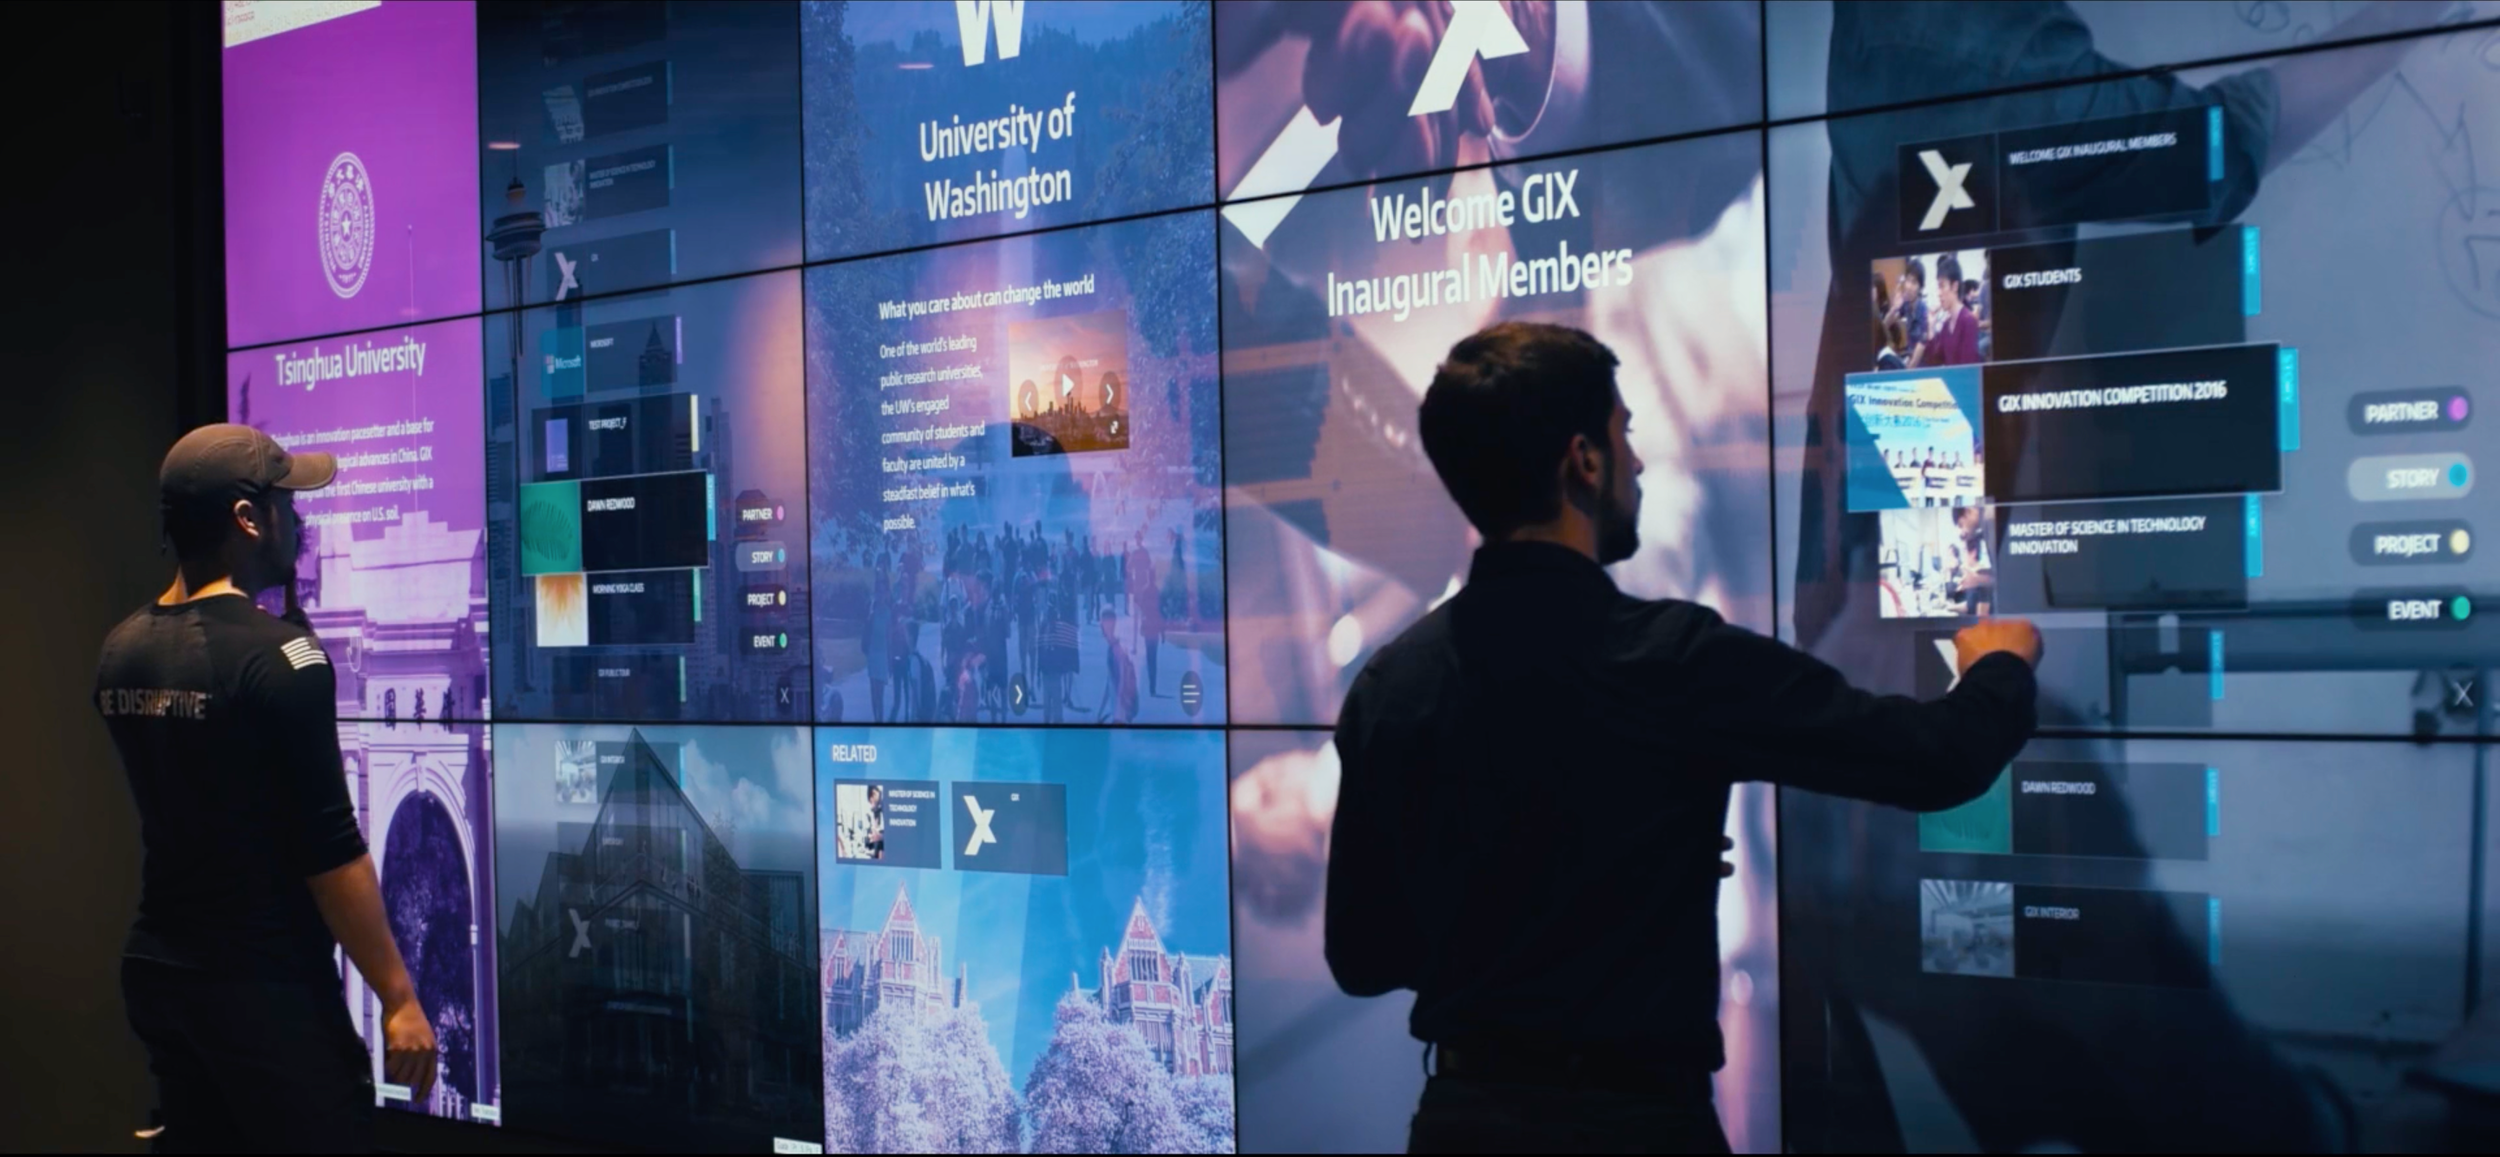 GIX interactive Network Wall